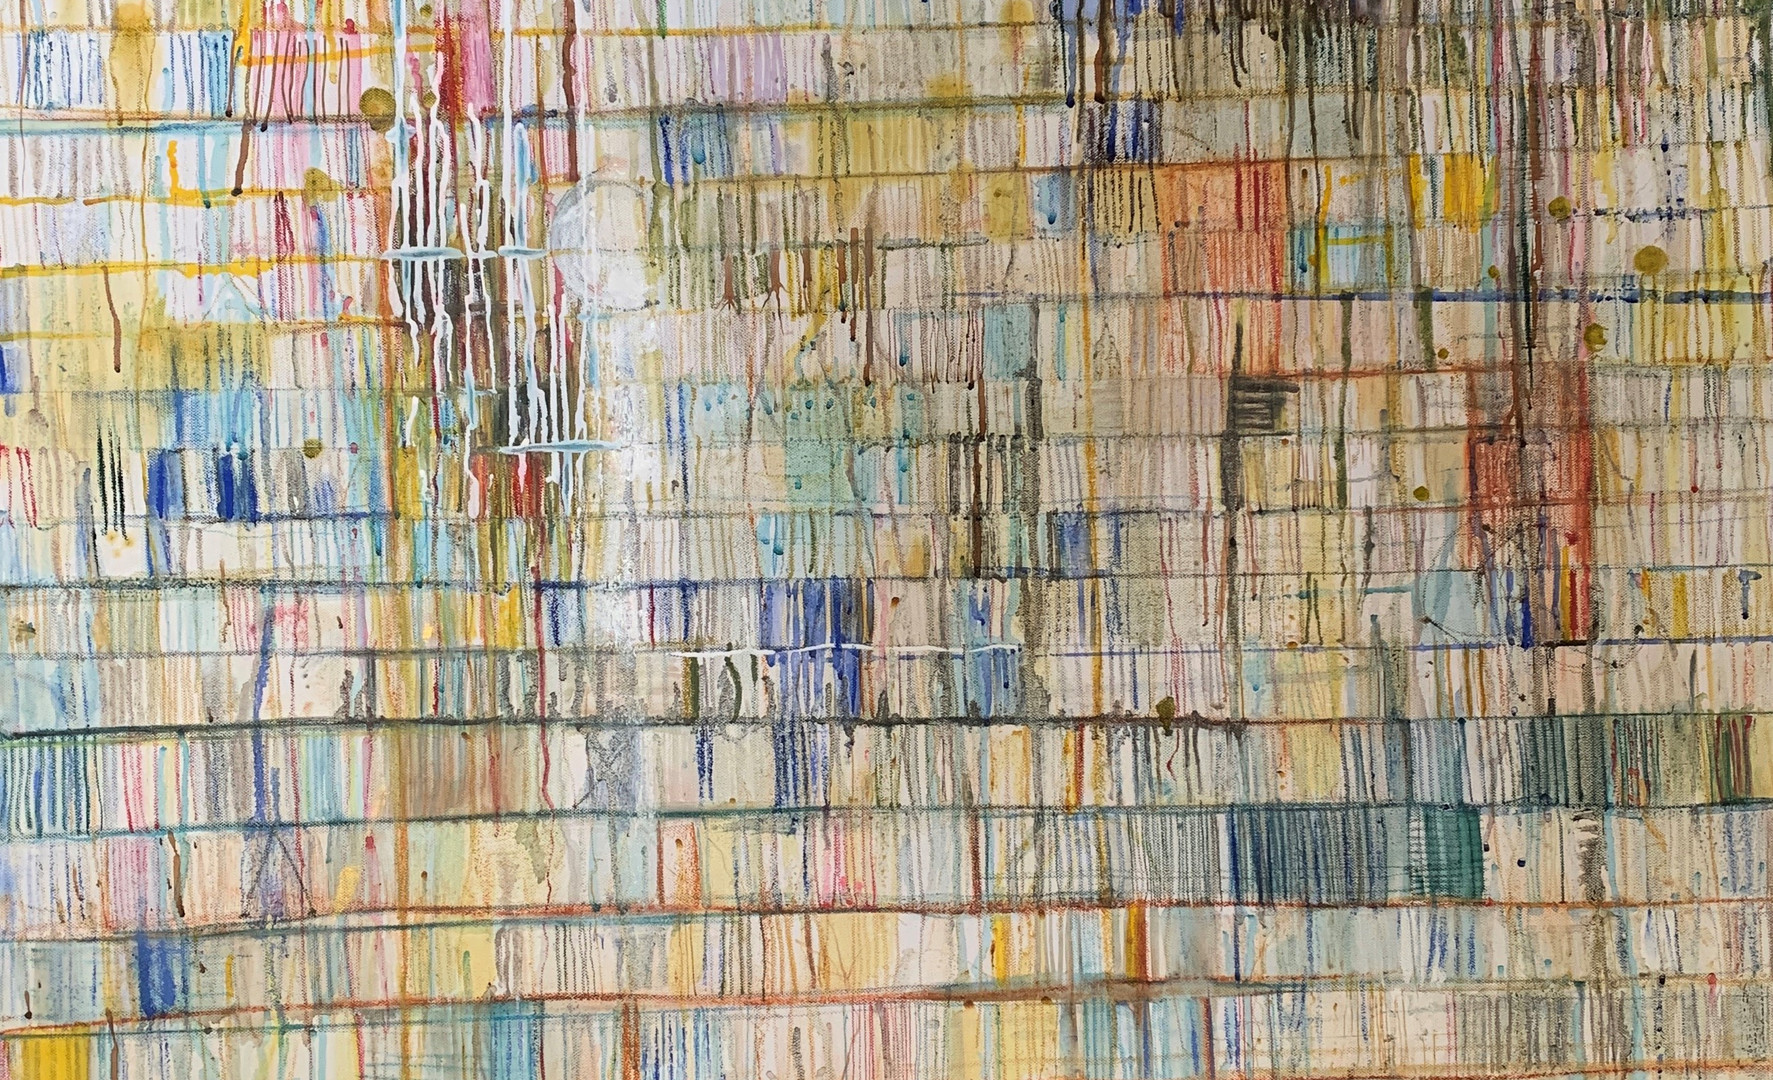 Lockdown 1, oil and other mediums on canvas, 1m x 1m, 2020, £895